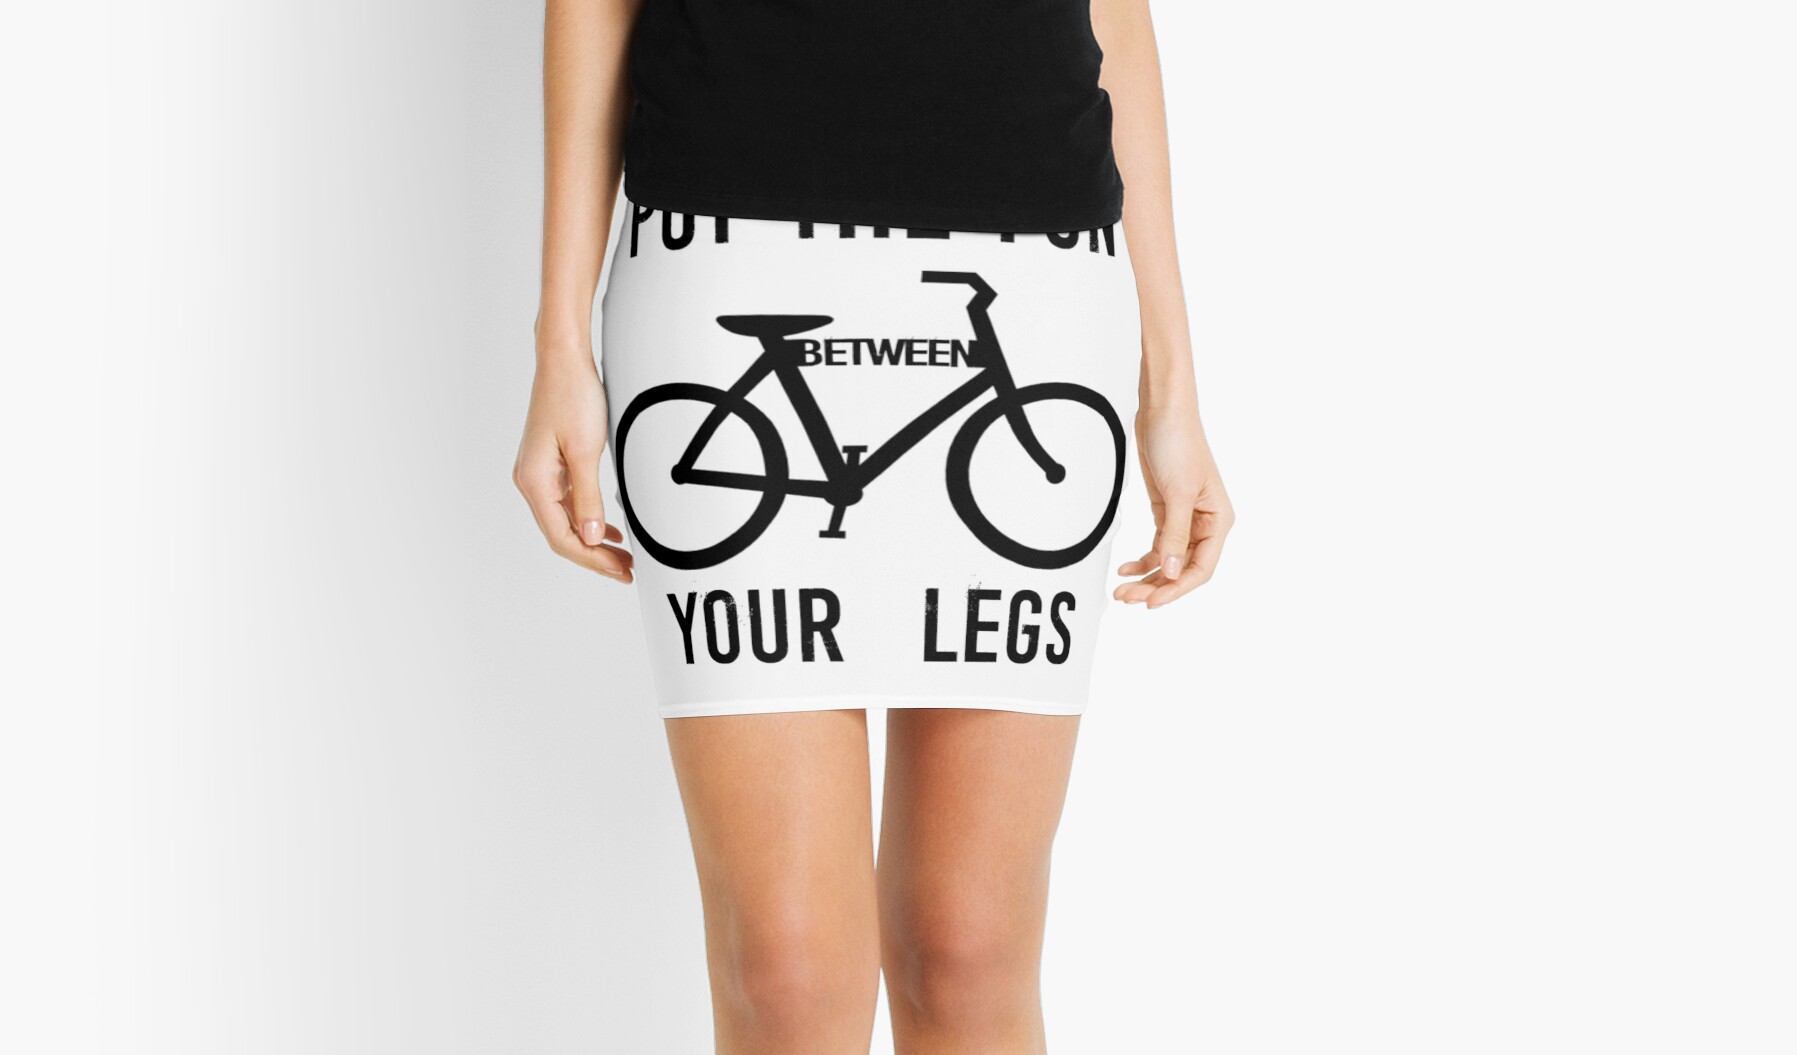 Put the Fun Between Your Legs by fixedgearnyc